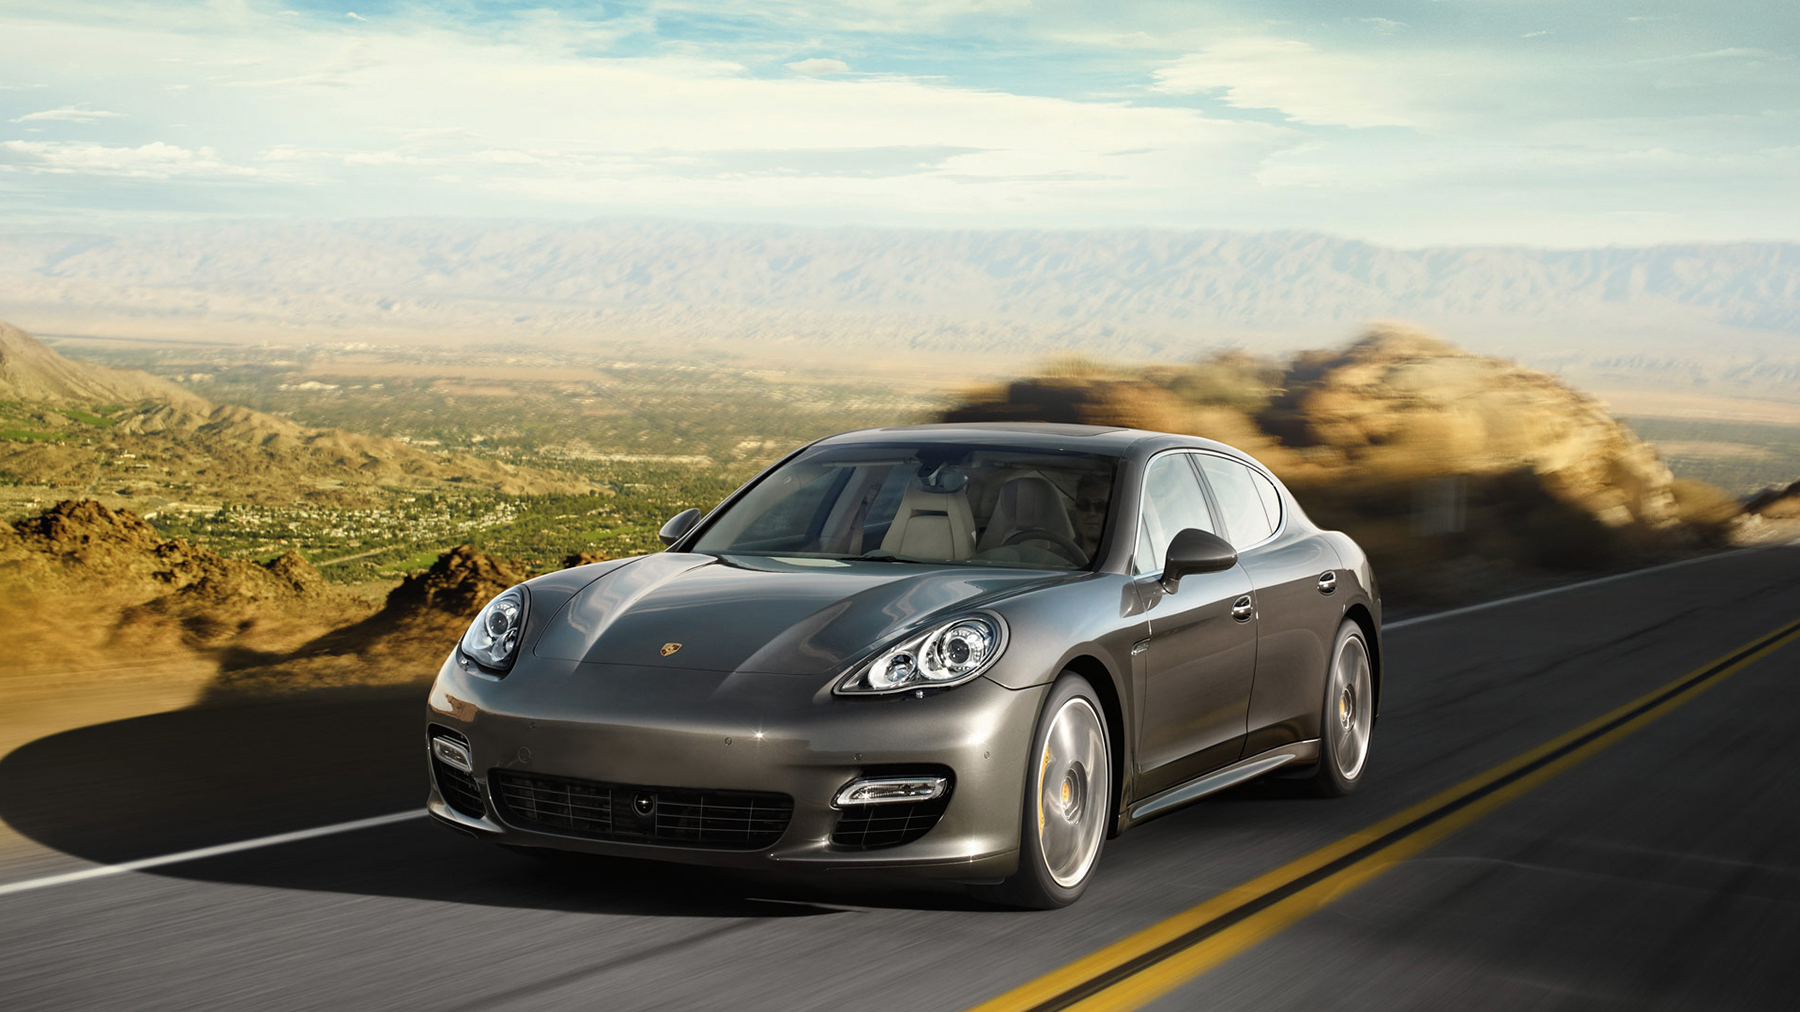 specialized-training_porsche_panamera_mediaslider